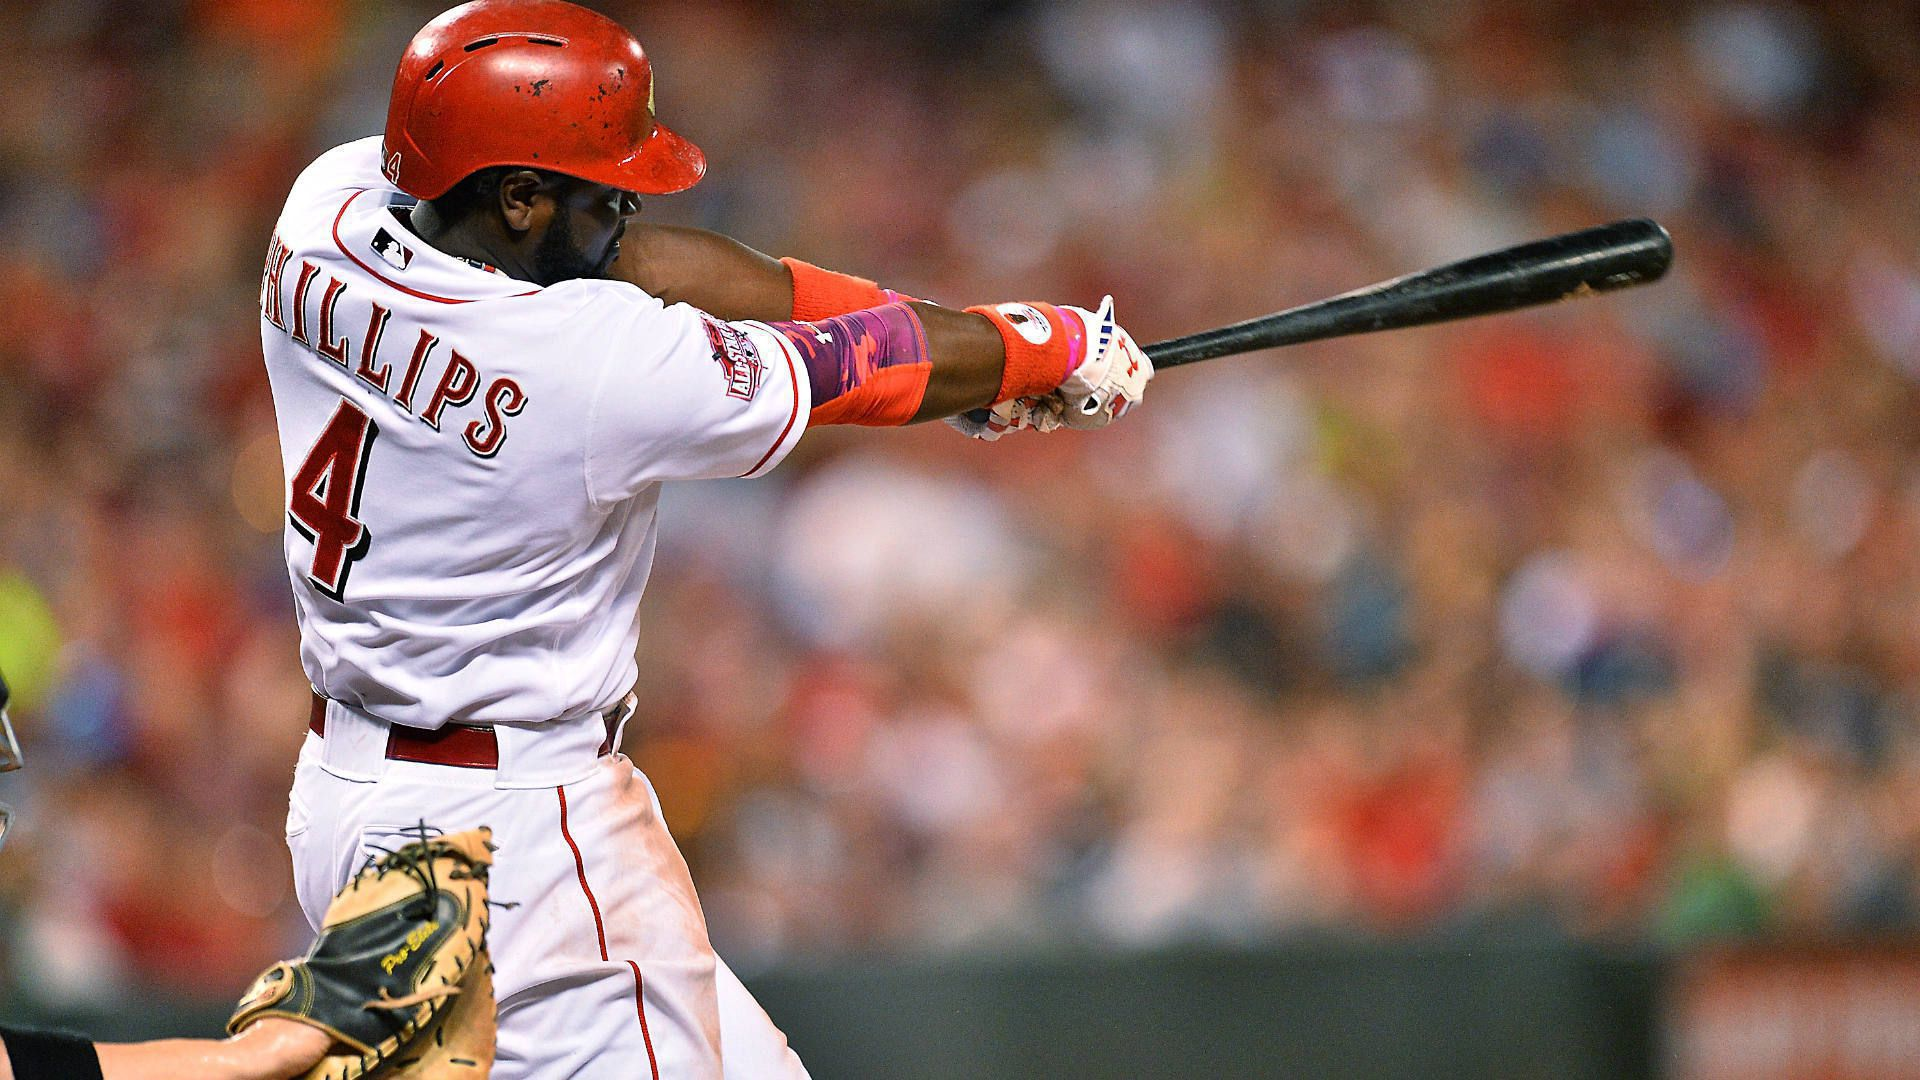 Brandon Phillips In High Resolution